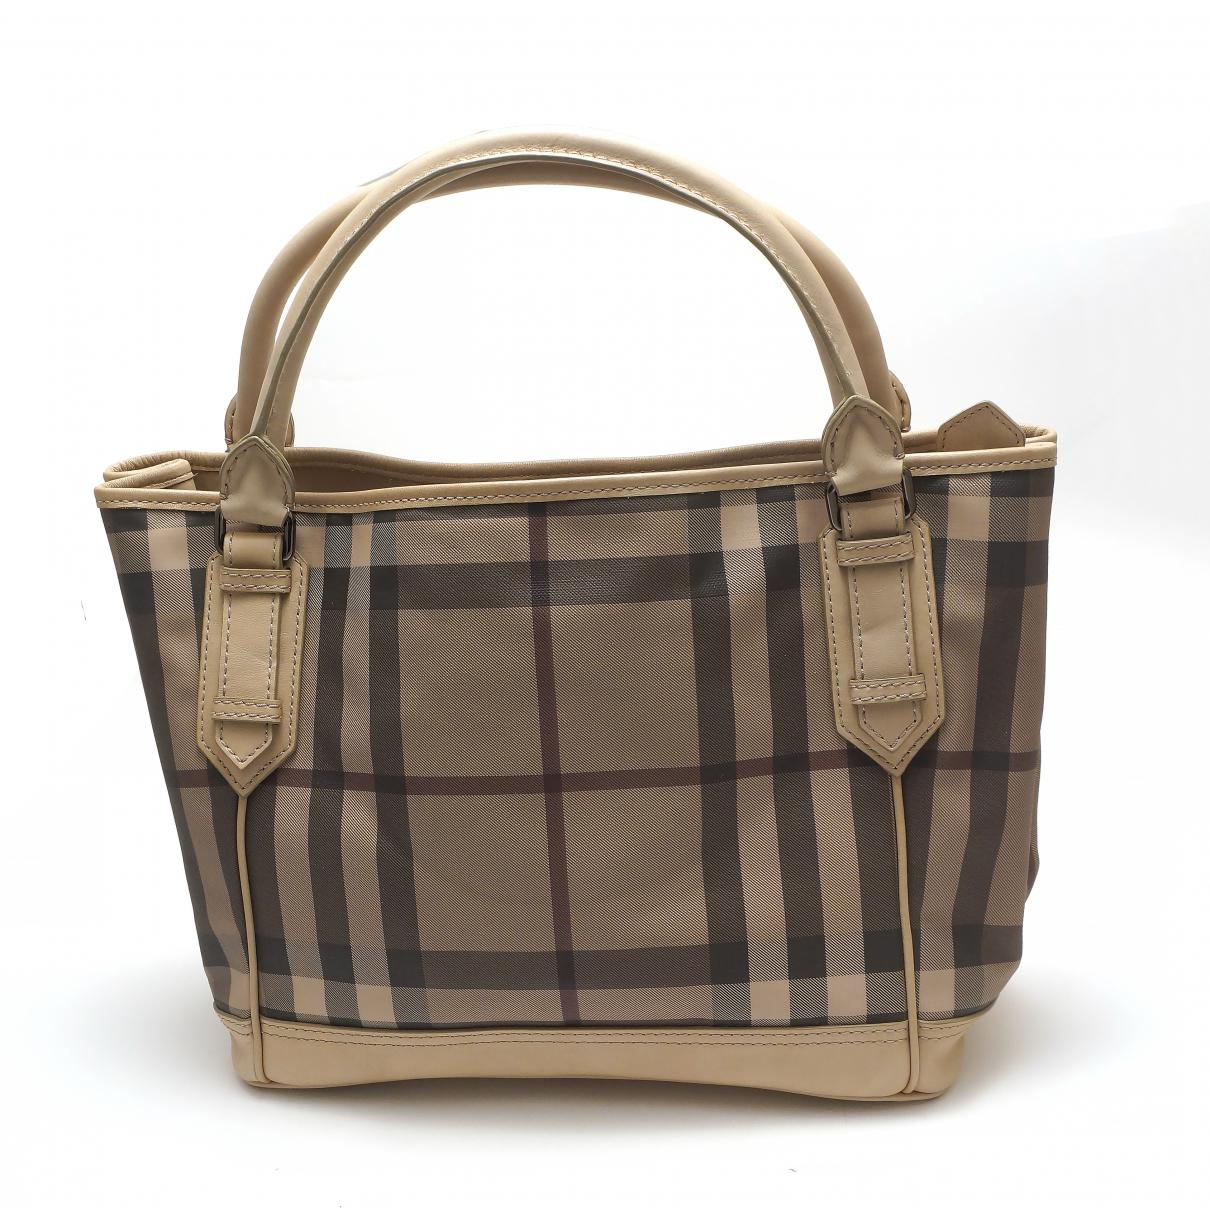 Burberry Women S Pre Owned Cloth Handbag